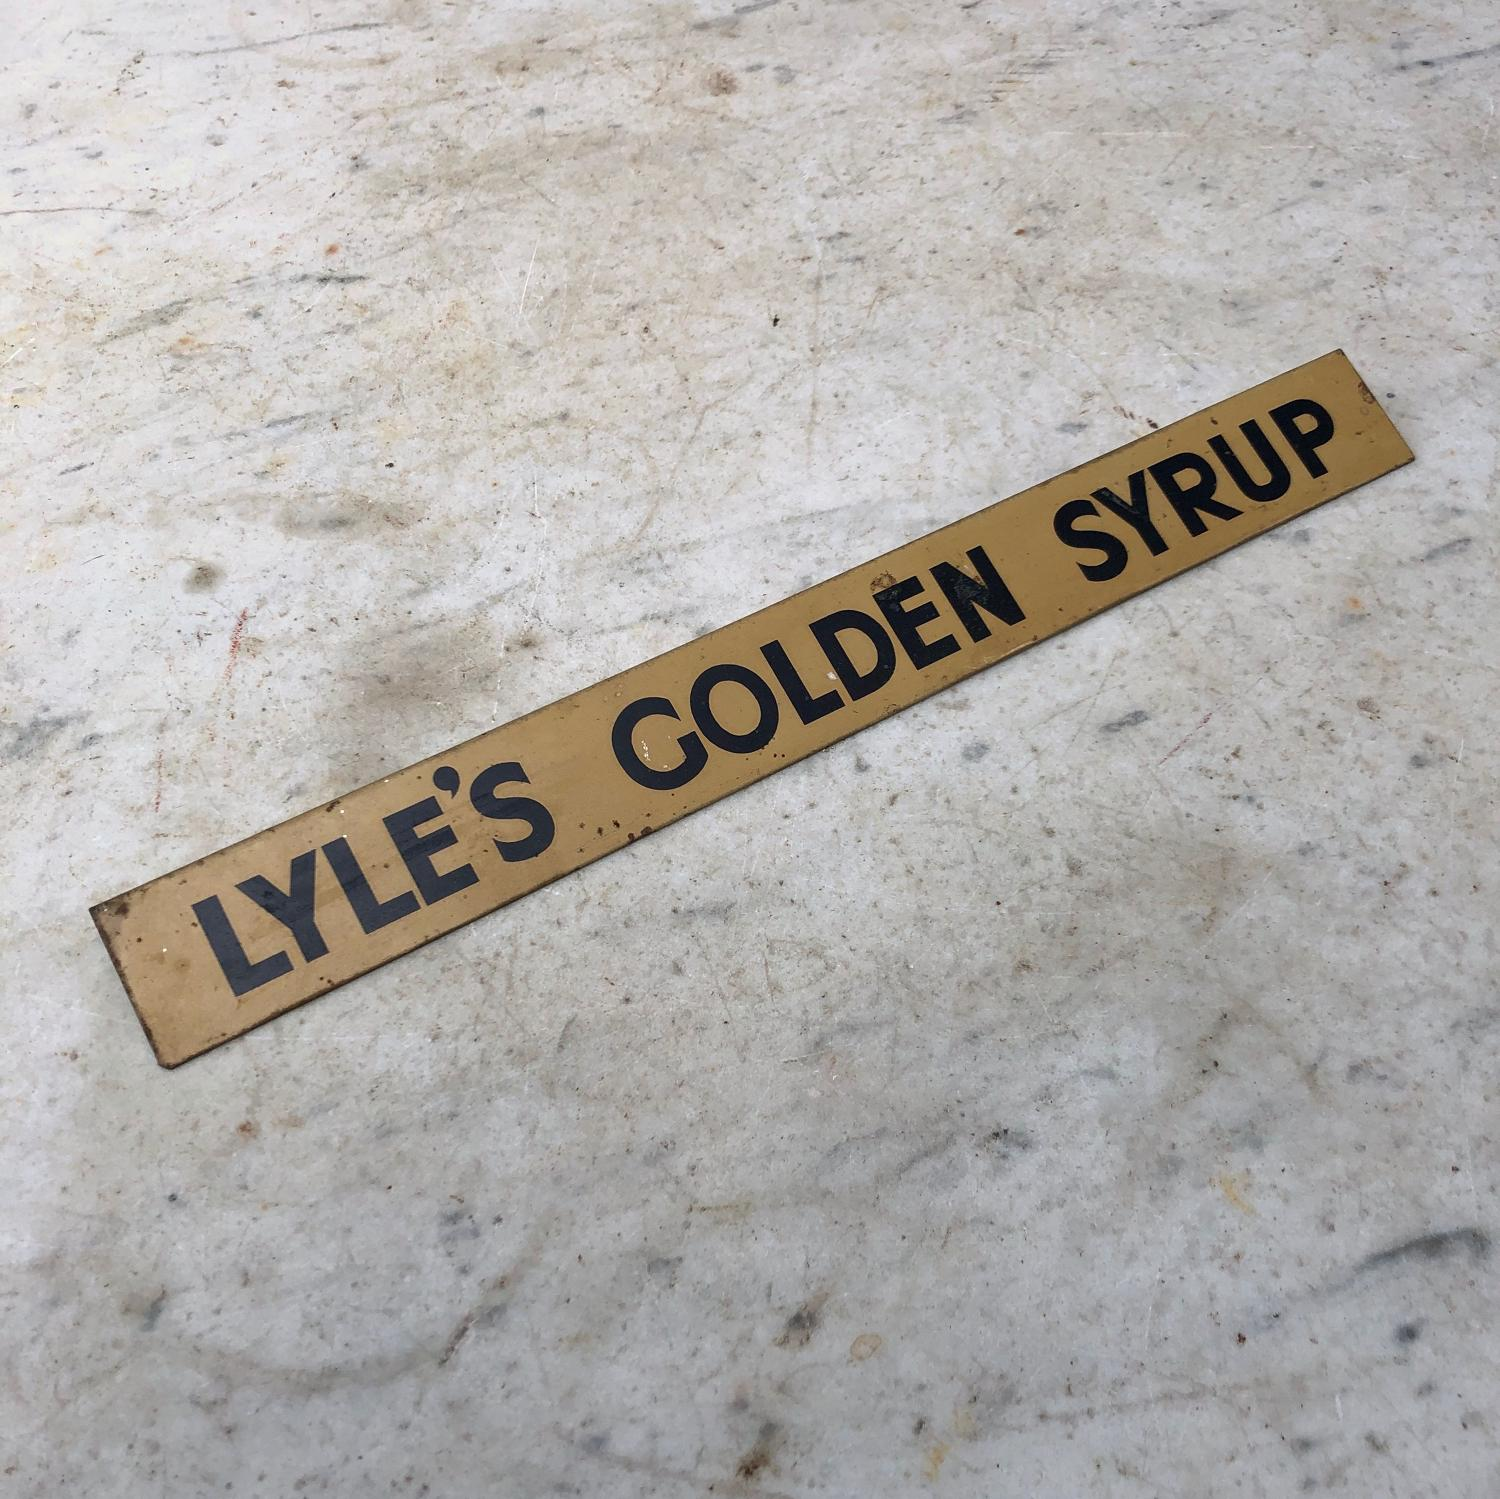 Excellent Condition Shops Advertising Shelf Strip - Lyles Golden Syrup